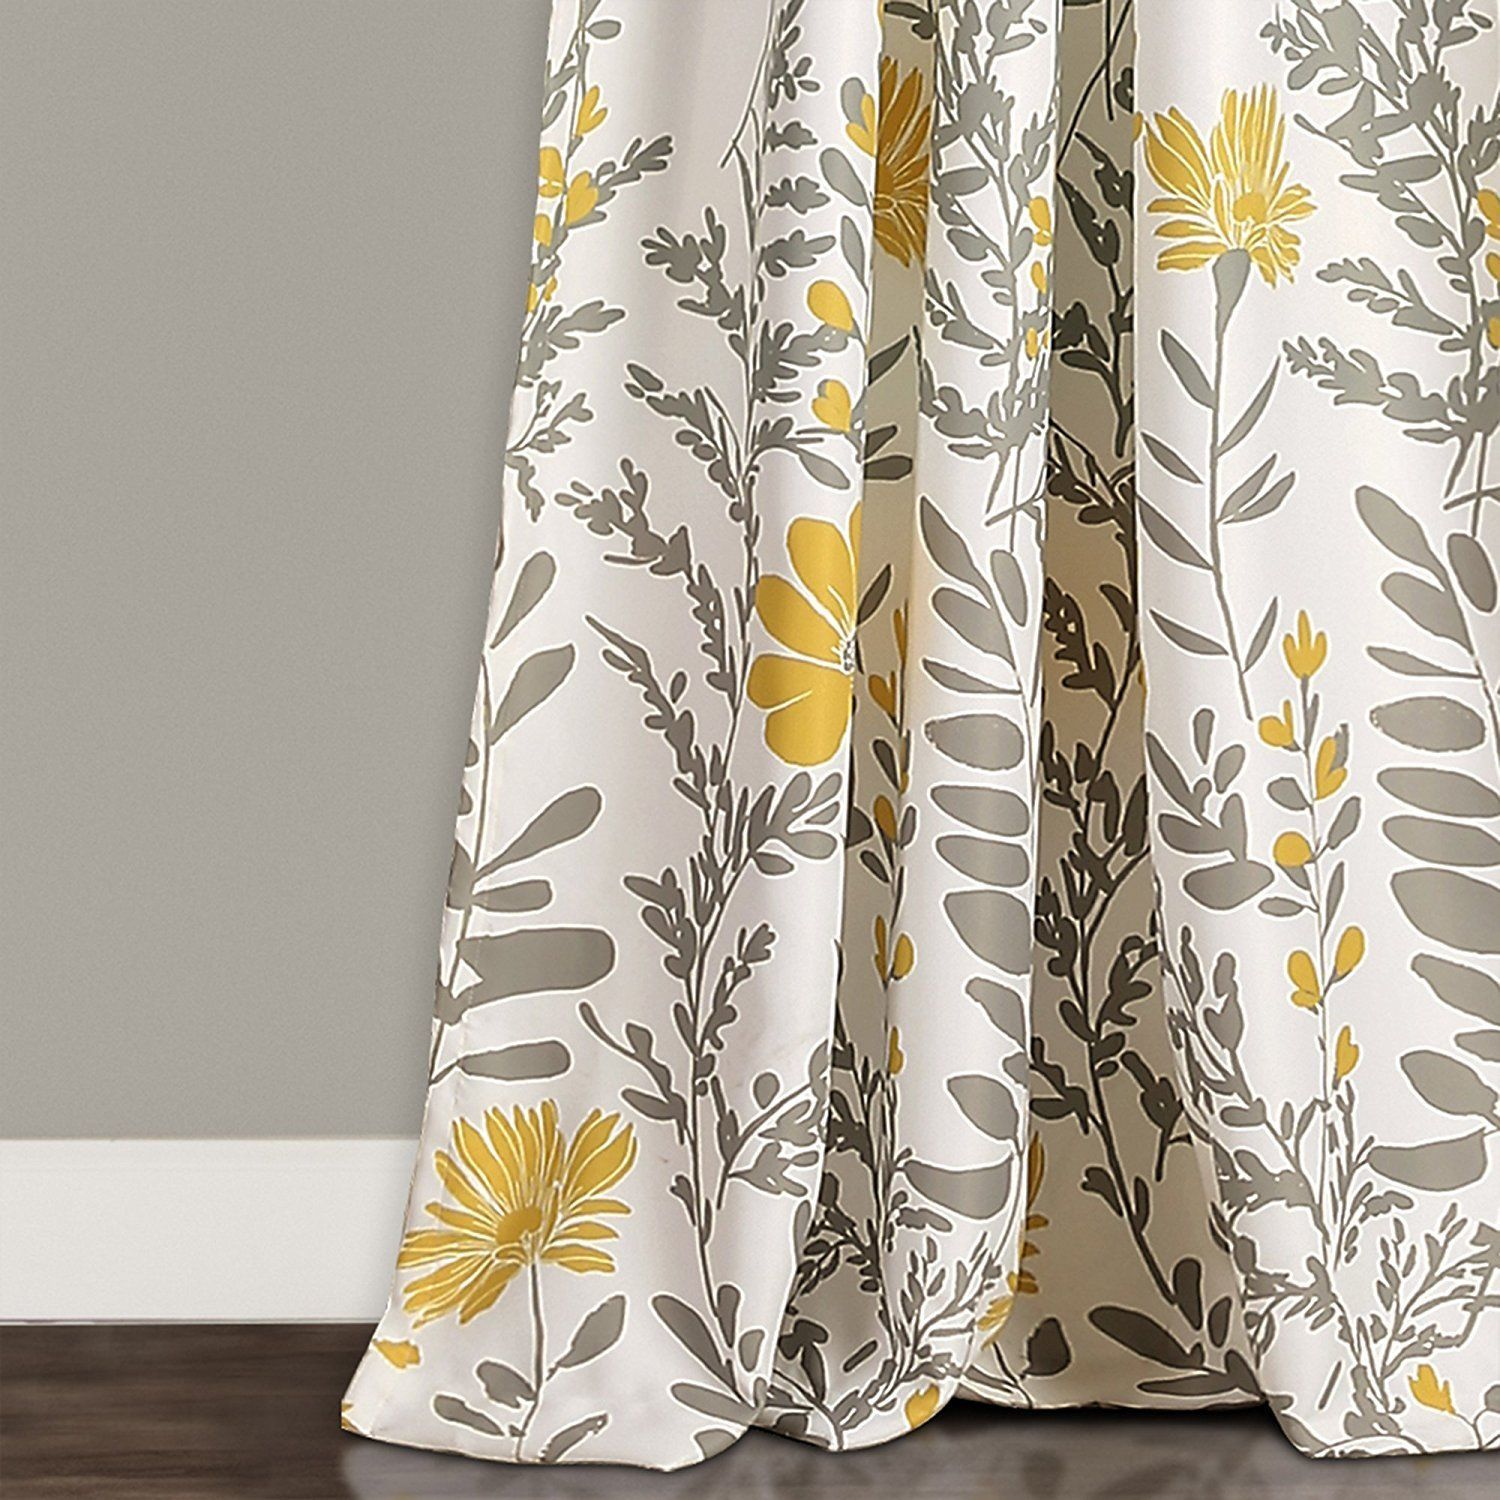 Set 2 Yellow Gray White Spring Floral Curtains Panels